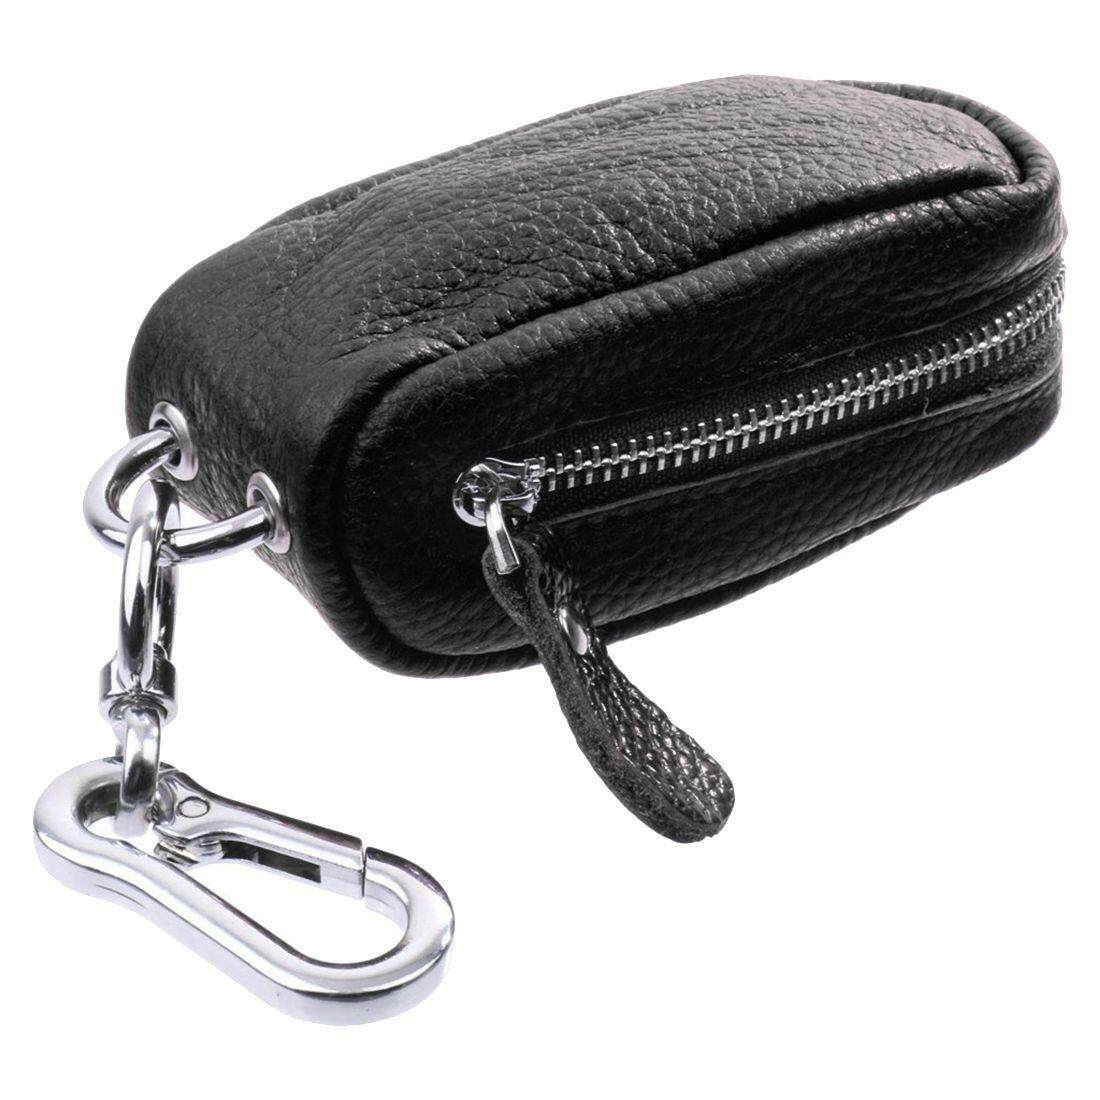 Car Key Bag Household key bag Unisex Zipper bag in PU Leather for Keychain Case for